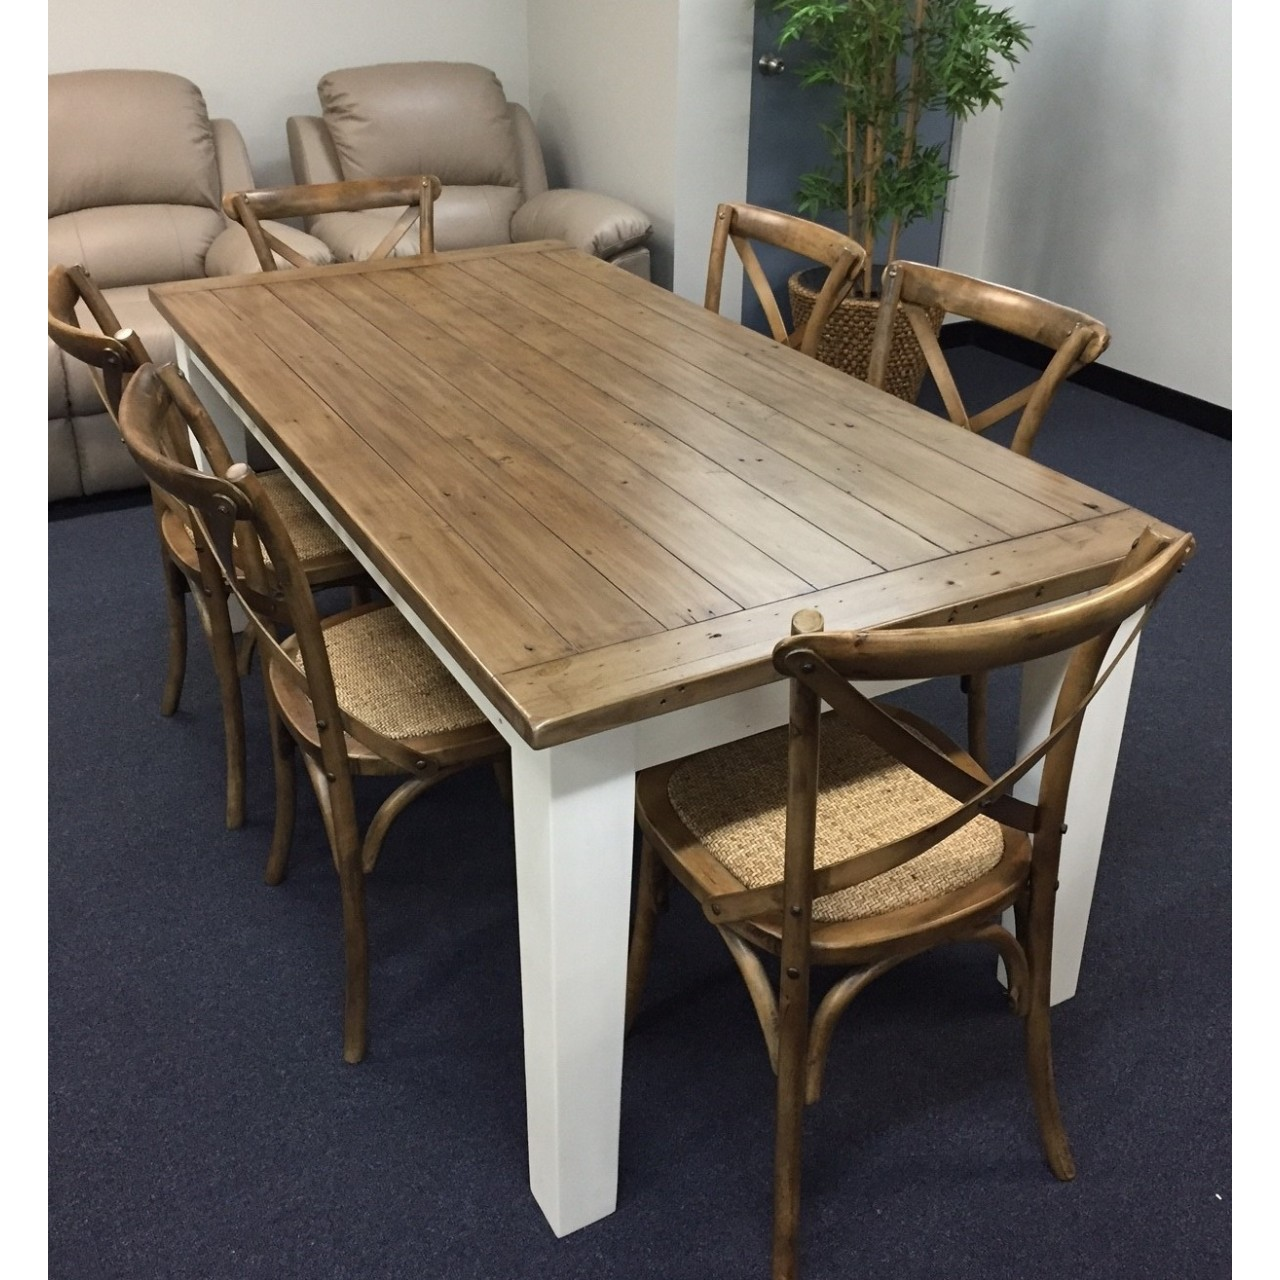 Tigress direct furniture and homewares for Timber dining room furniture australia